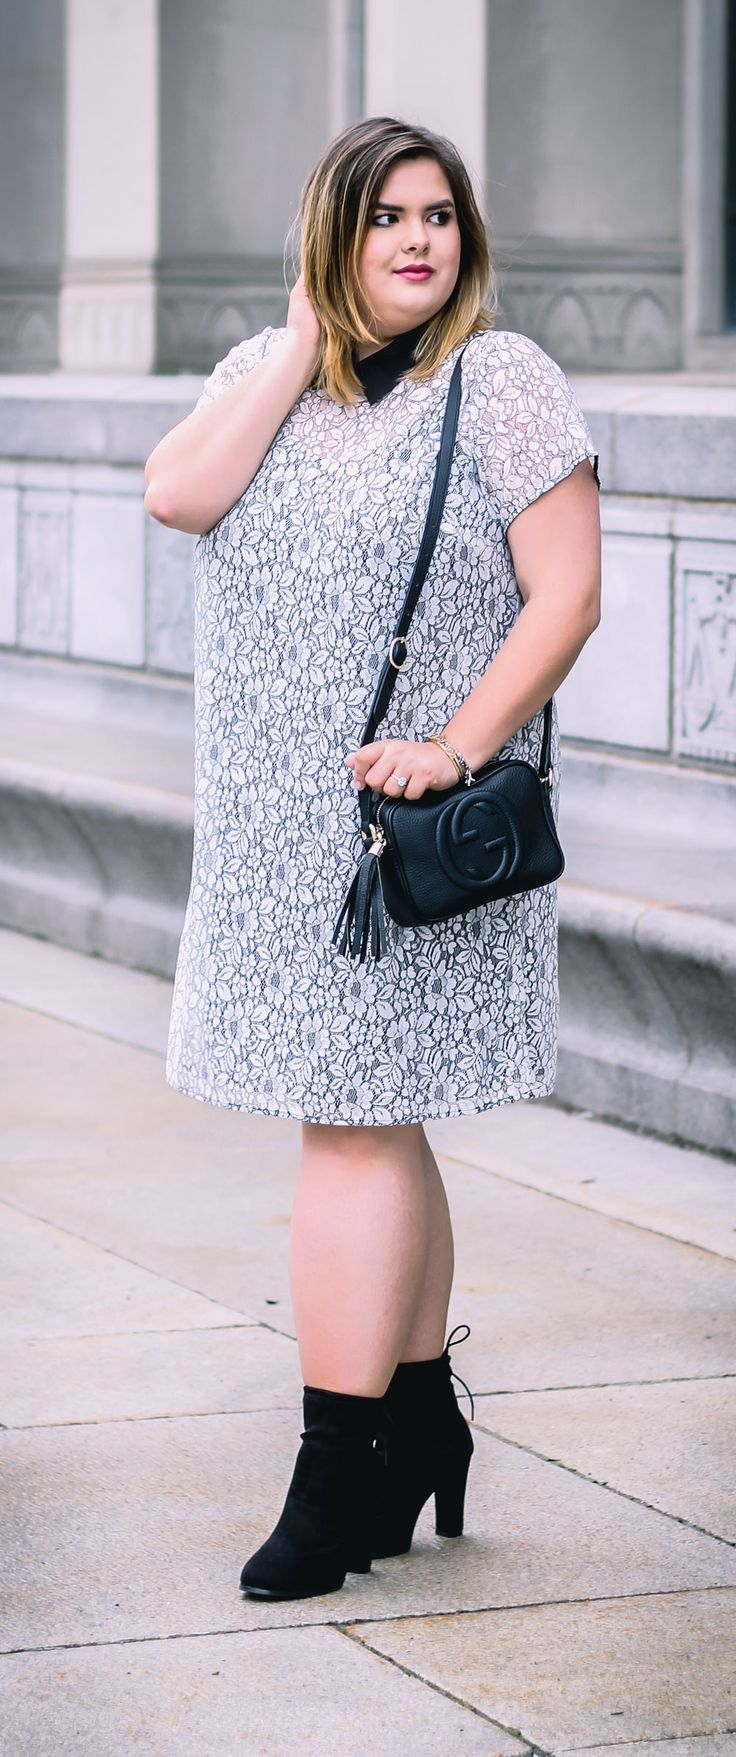 Black & White lace collared dress